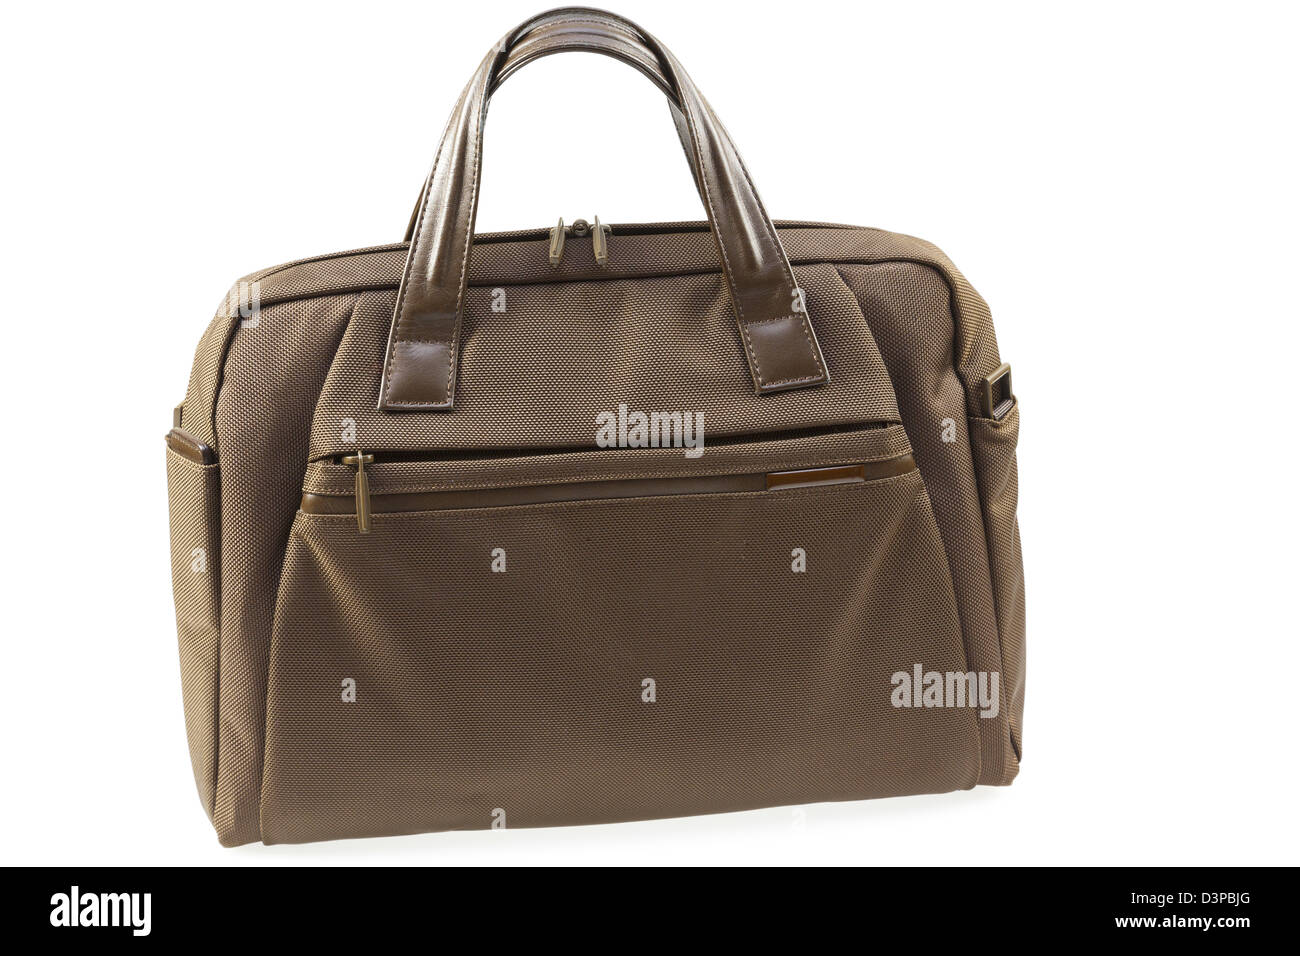 Closed brown briefcase isolated on a white background. - Stock Image